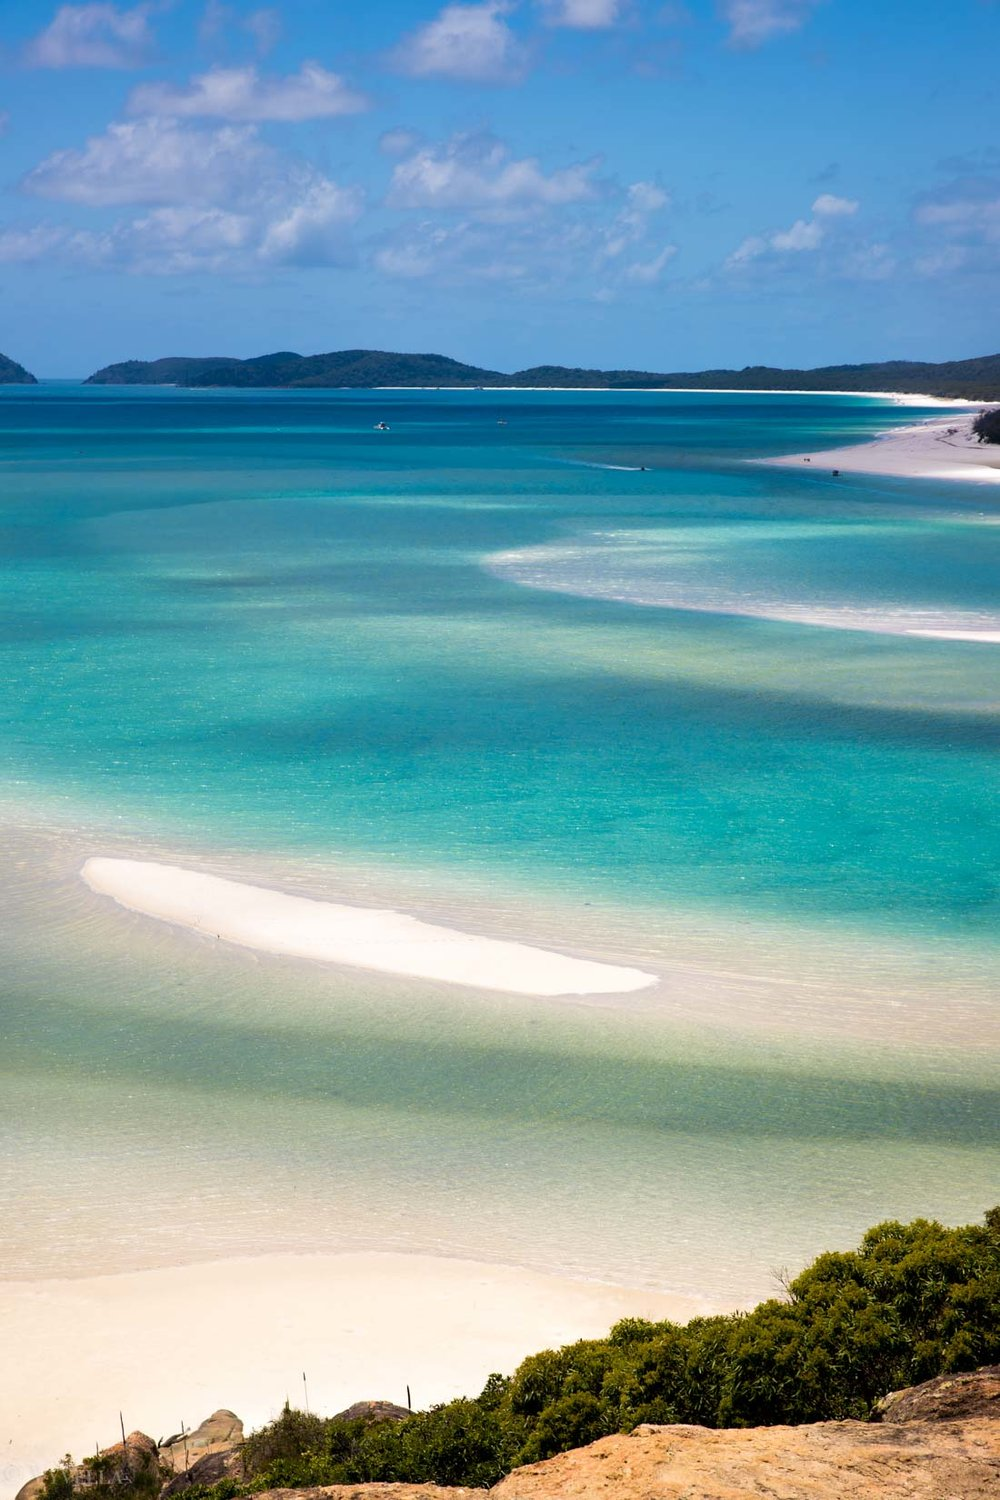 travel_a-natural-wonder-of-the-world-the-great-barrier-reef_08.jpg